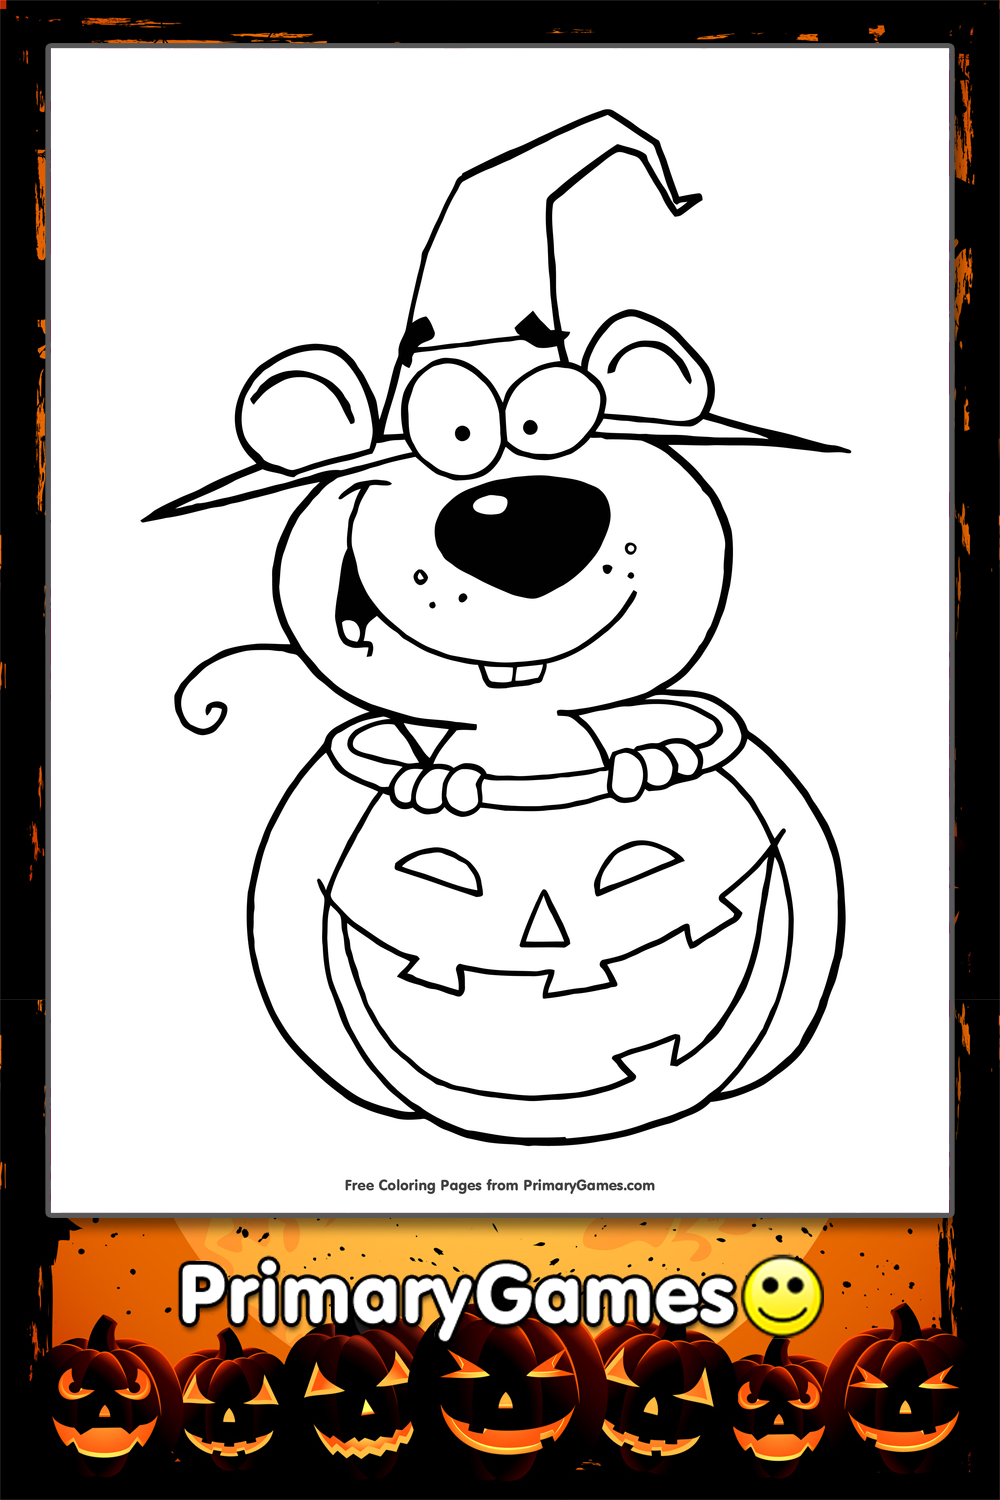 Mouse in Pumpkin Coloring Page | Printable Halloween ...